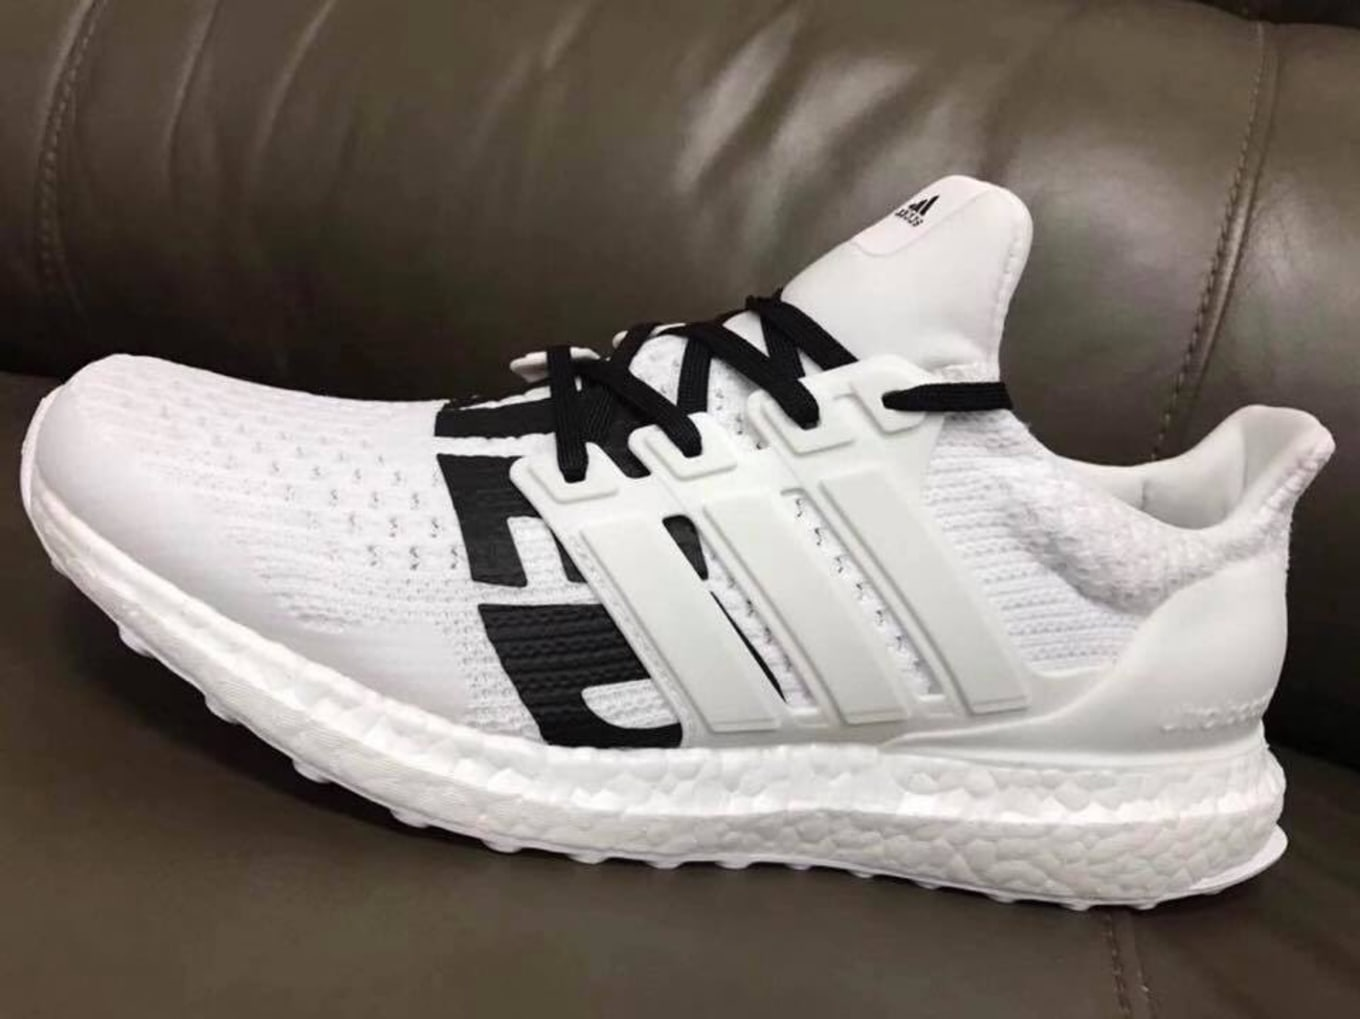 c6a1b962a2b A first look at an upcoming Adidas collab from the Consortium retailer.